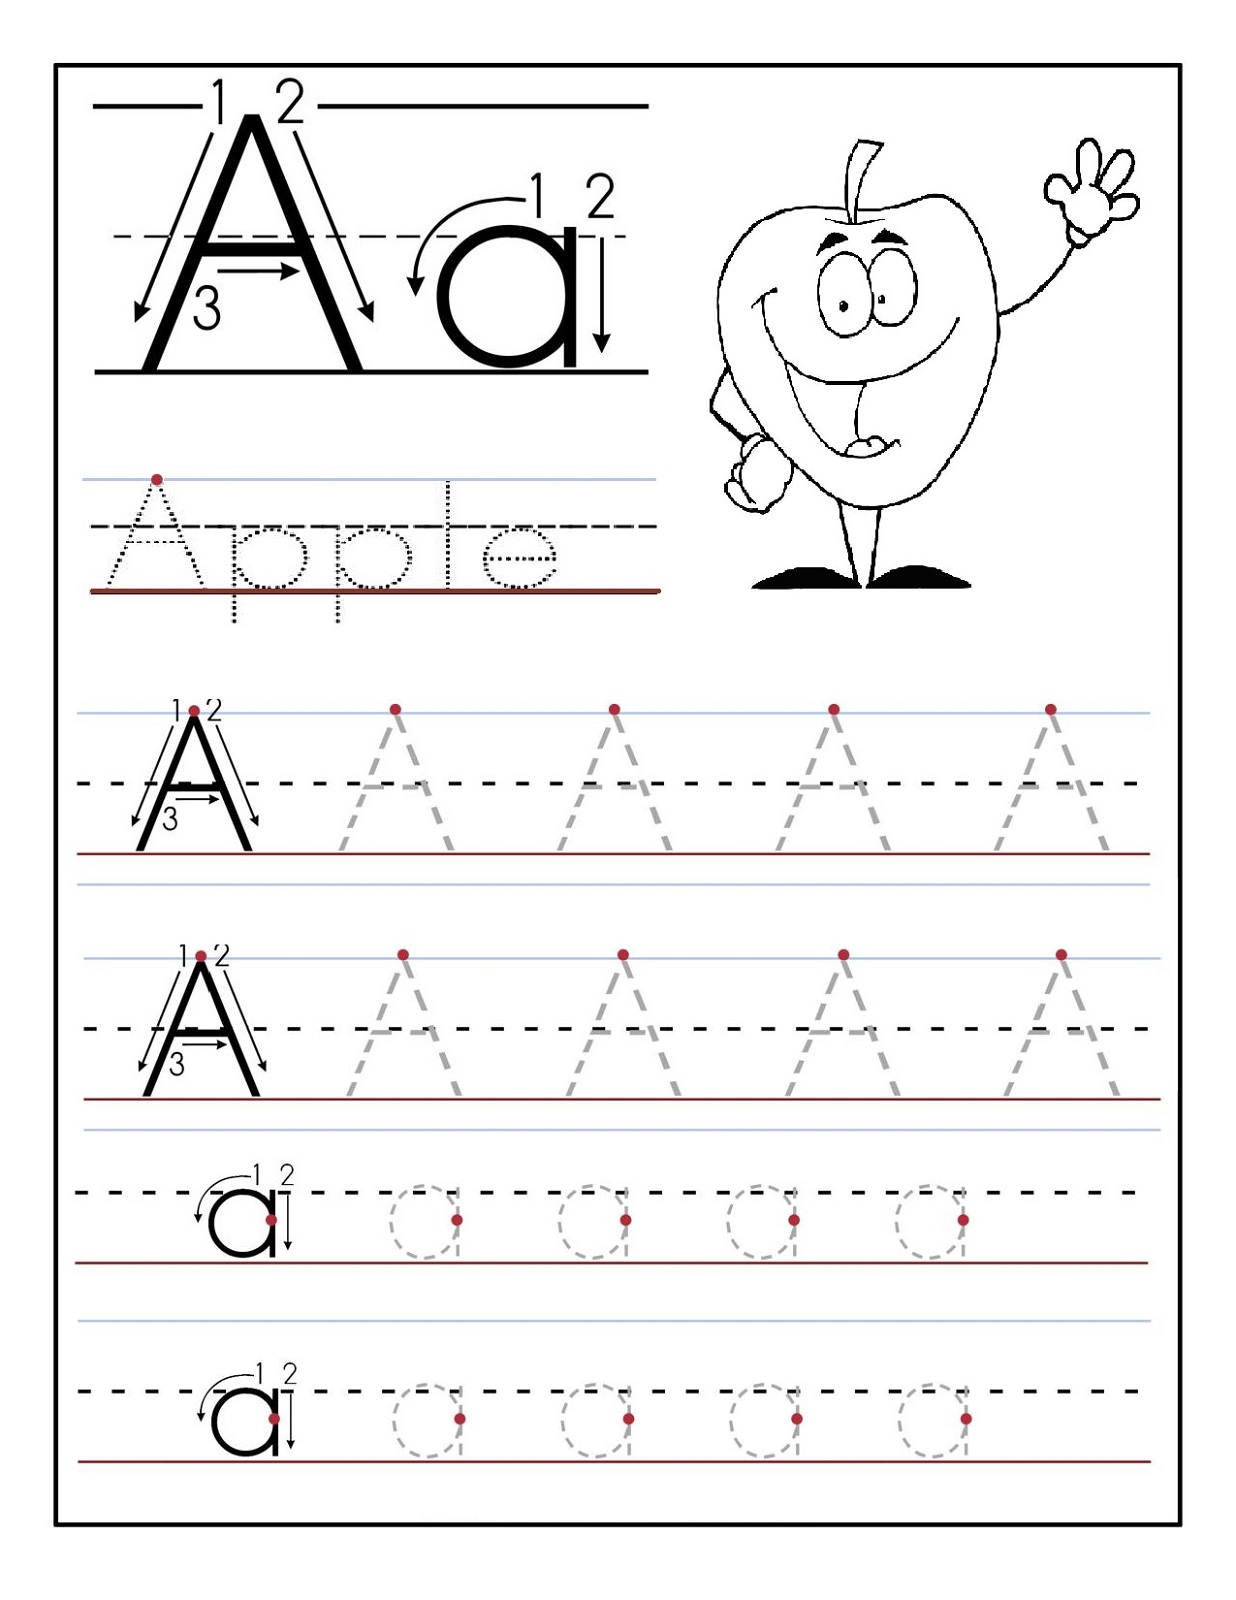 Worksheet Free Printable Preschool Worksheets Tracing free printable preschool worksheets tracing intrepidpath printables activity shelter